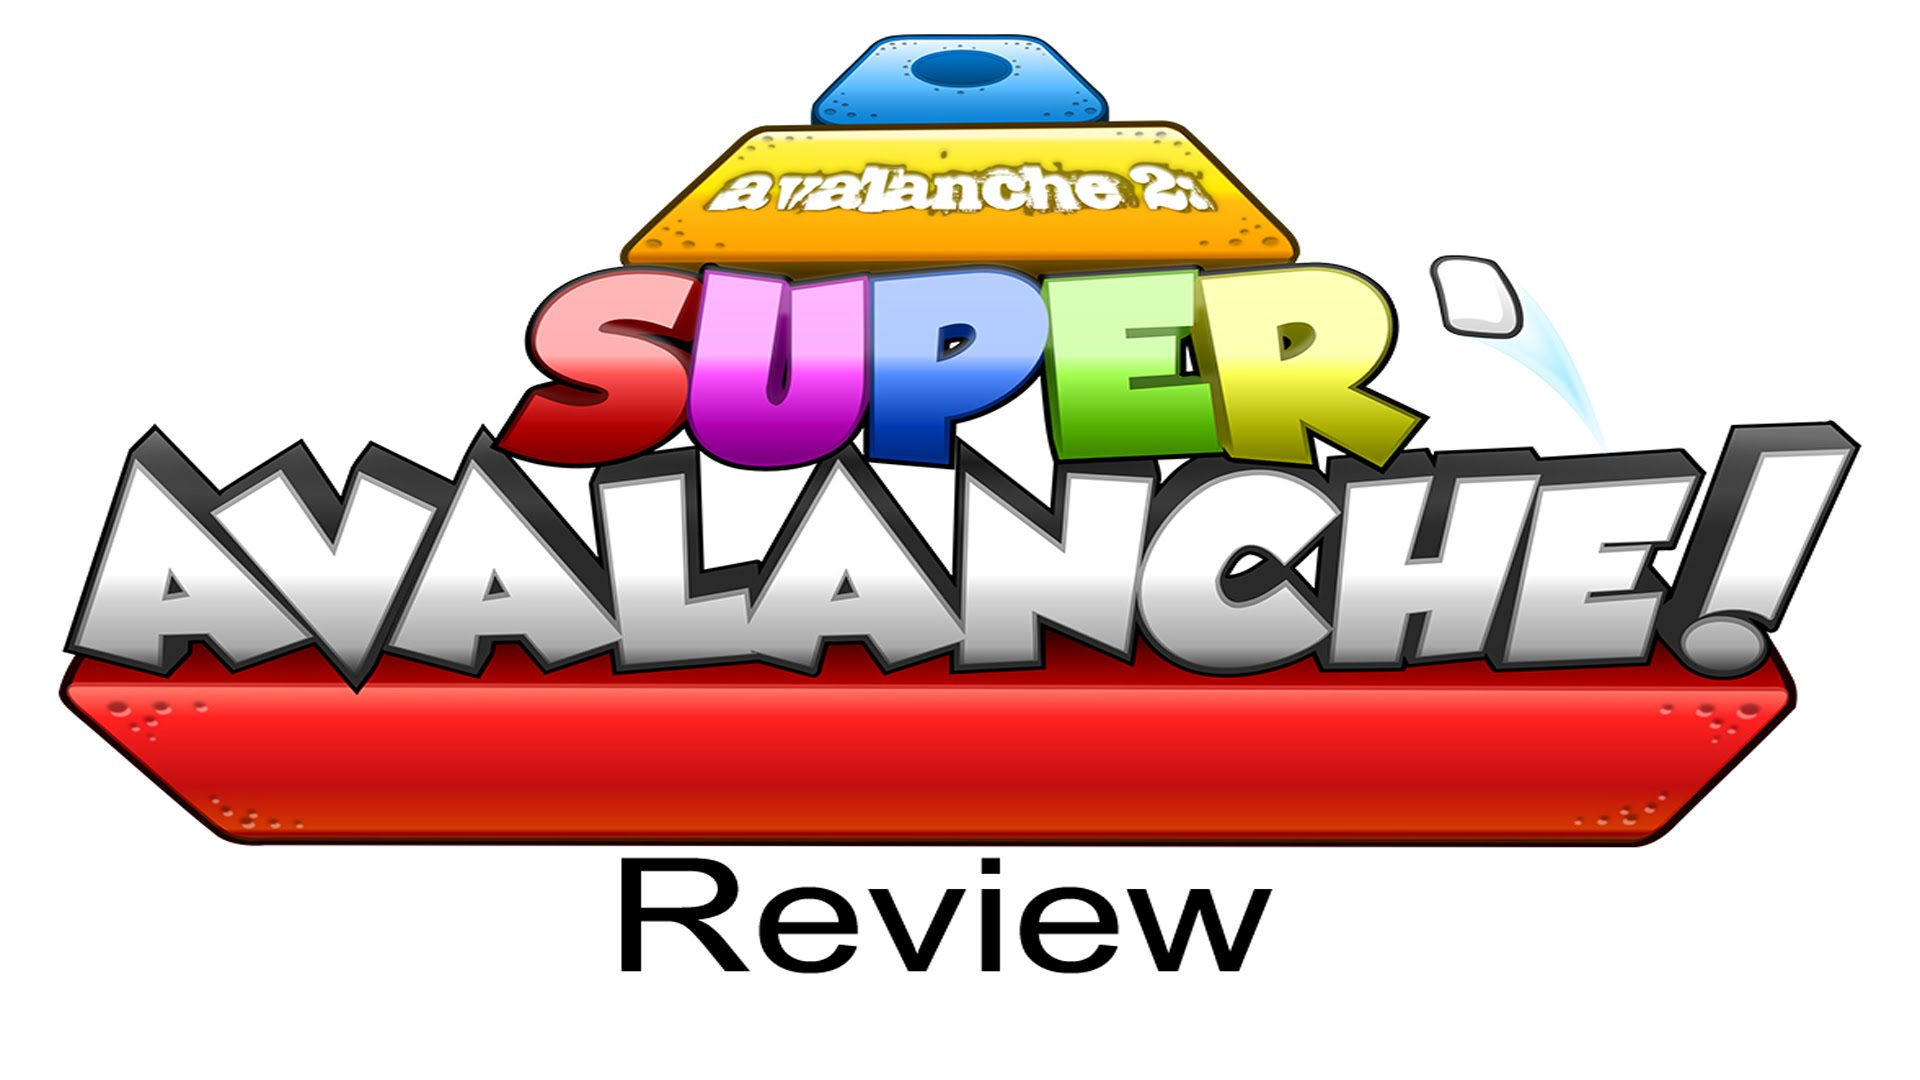 Avalanche clipart single Avalanche 2 Avalanche Gameplay Super